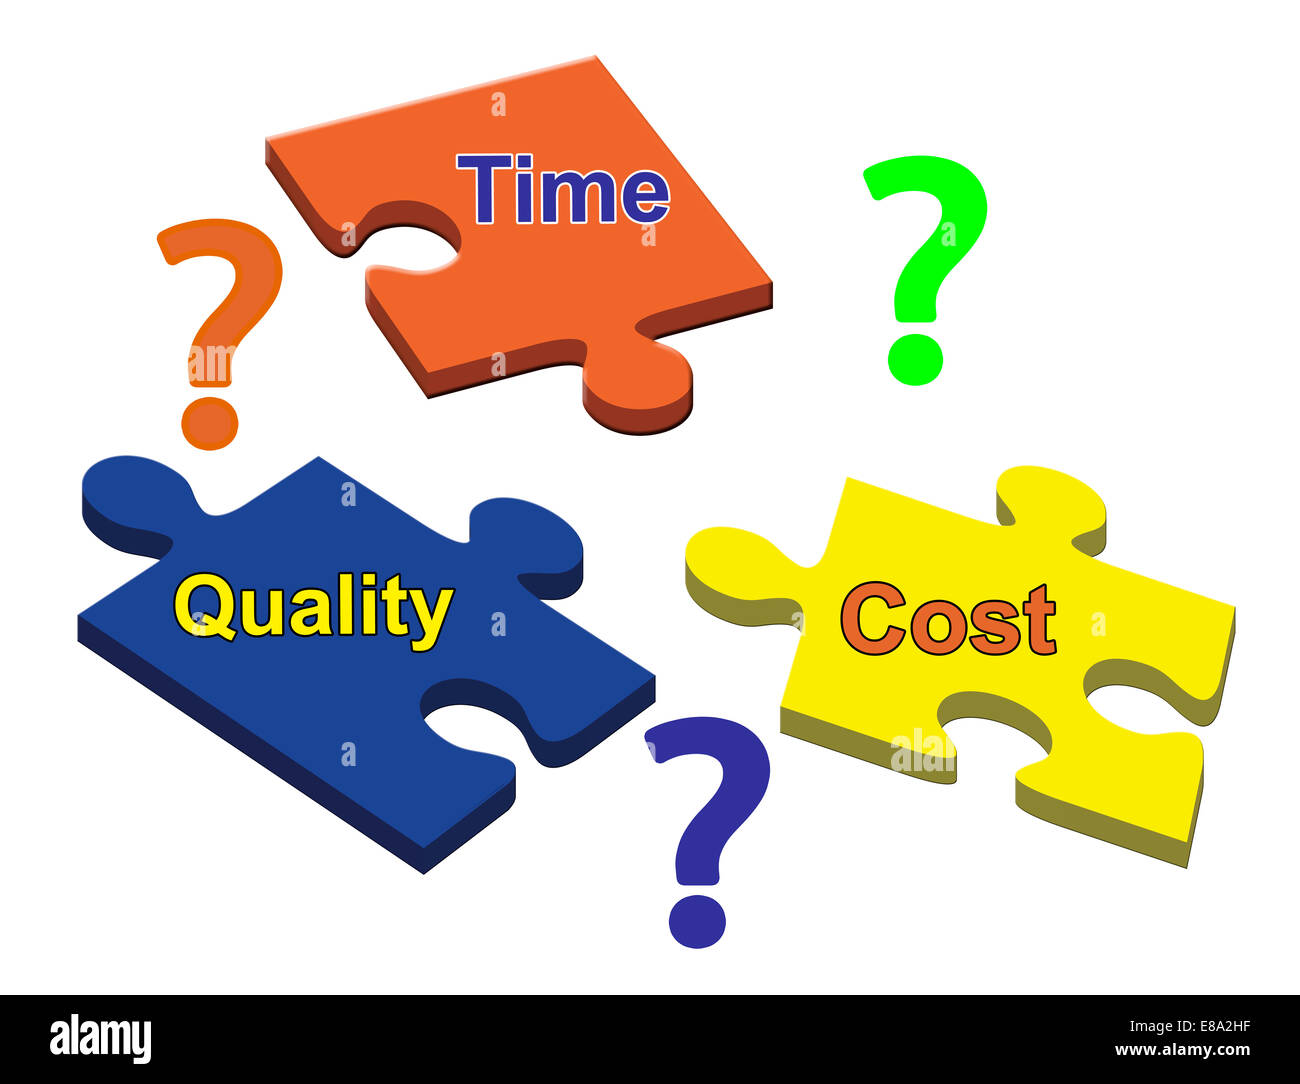 Time, Cost, Quality Concept - Stock Image